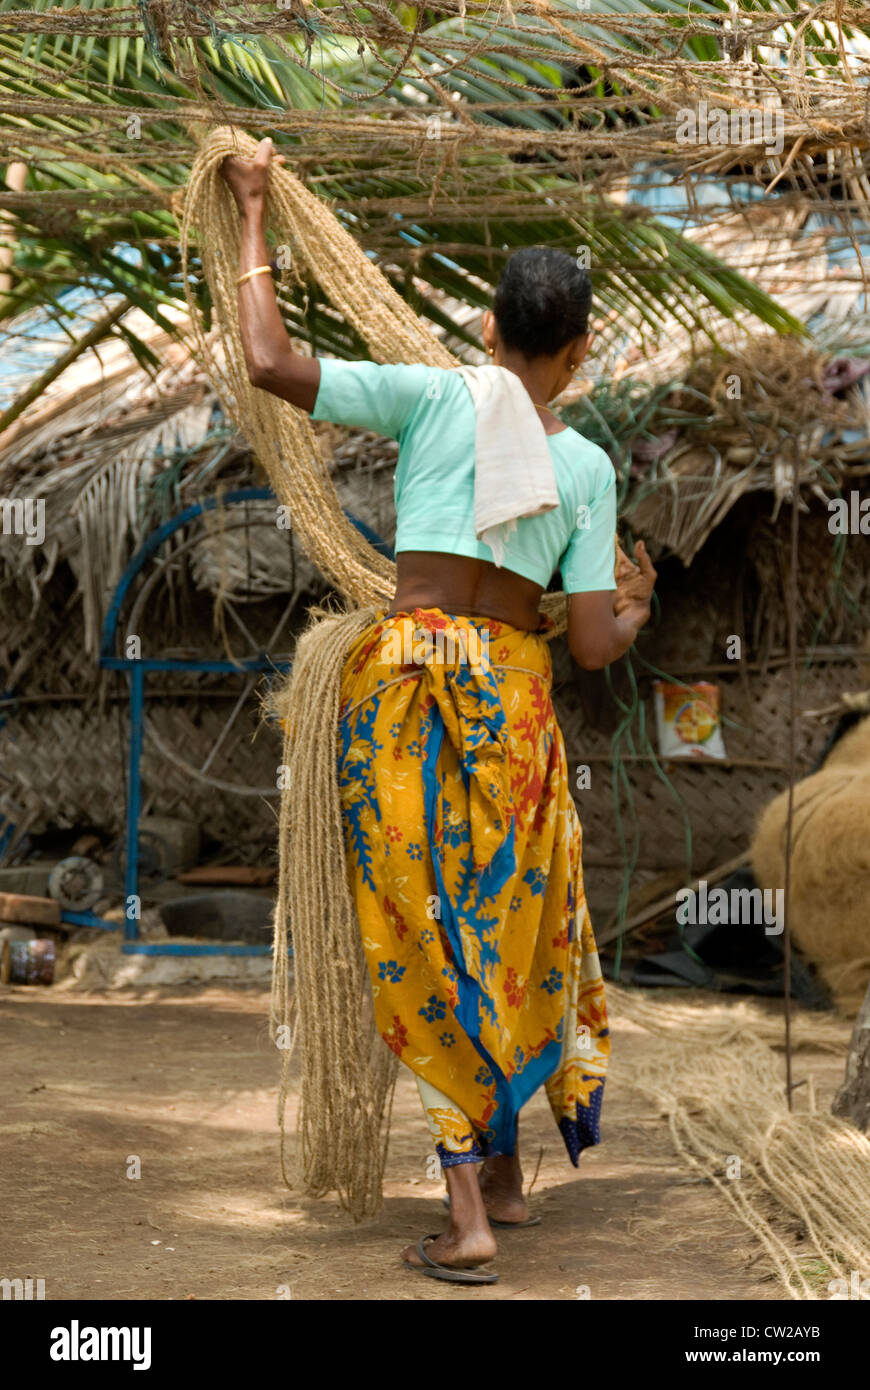 Keralite woman spinning out cord made out of coir - coconut product - Alappuzha, Kerala - Stock Image